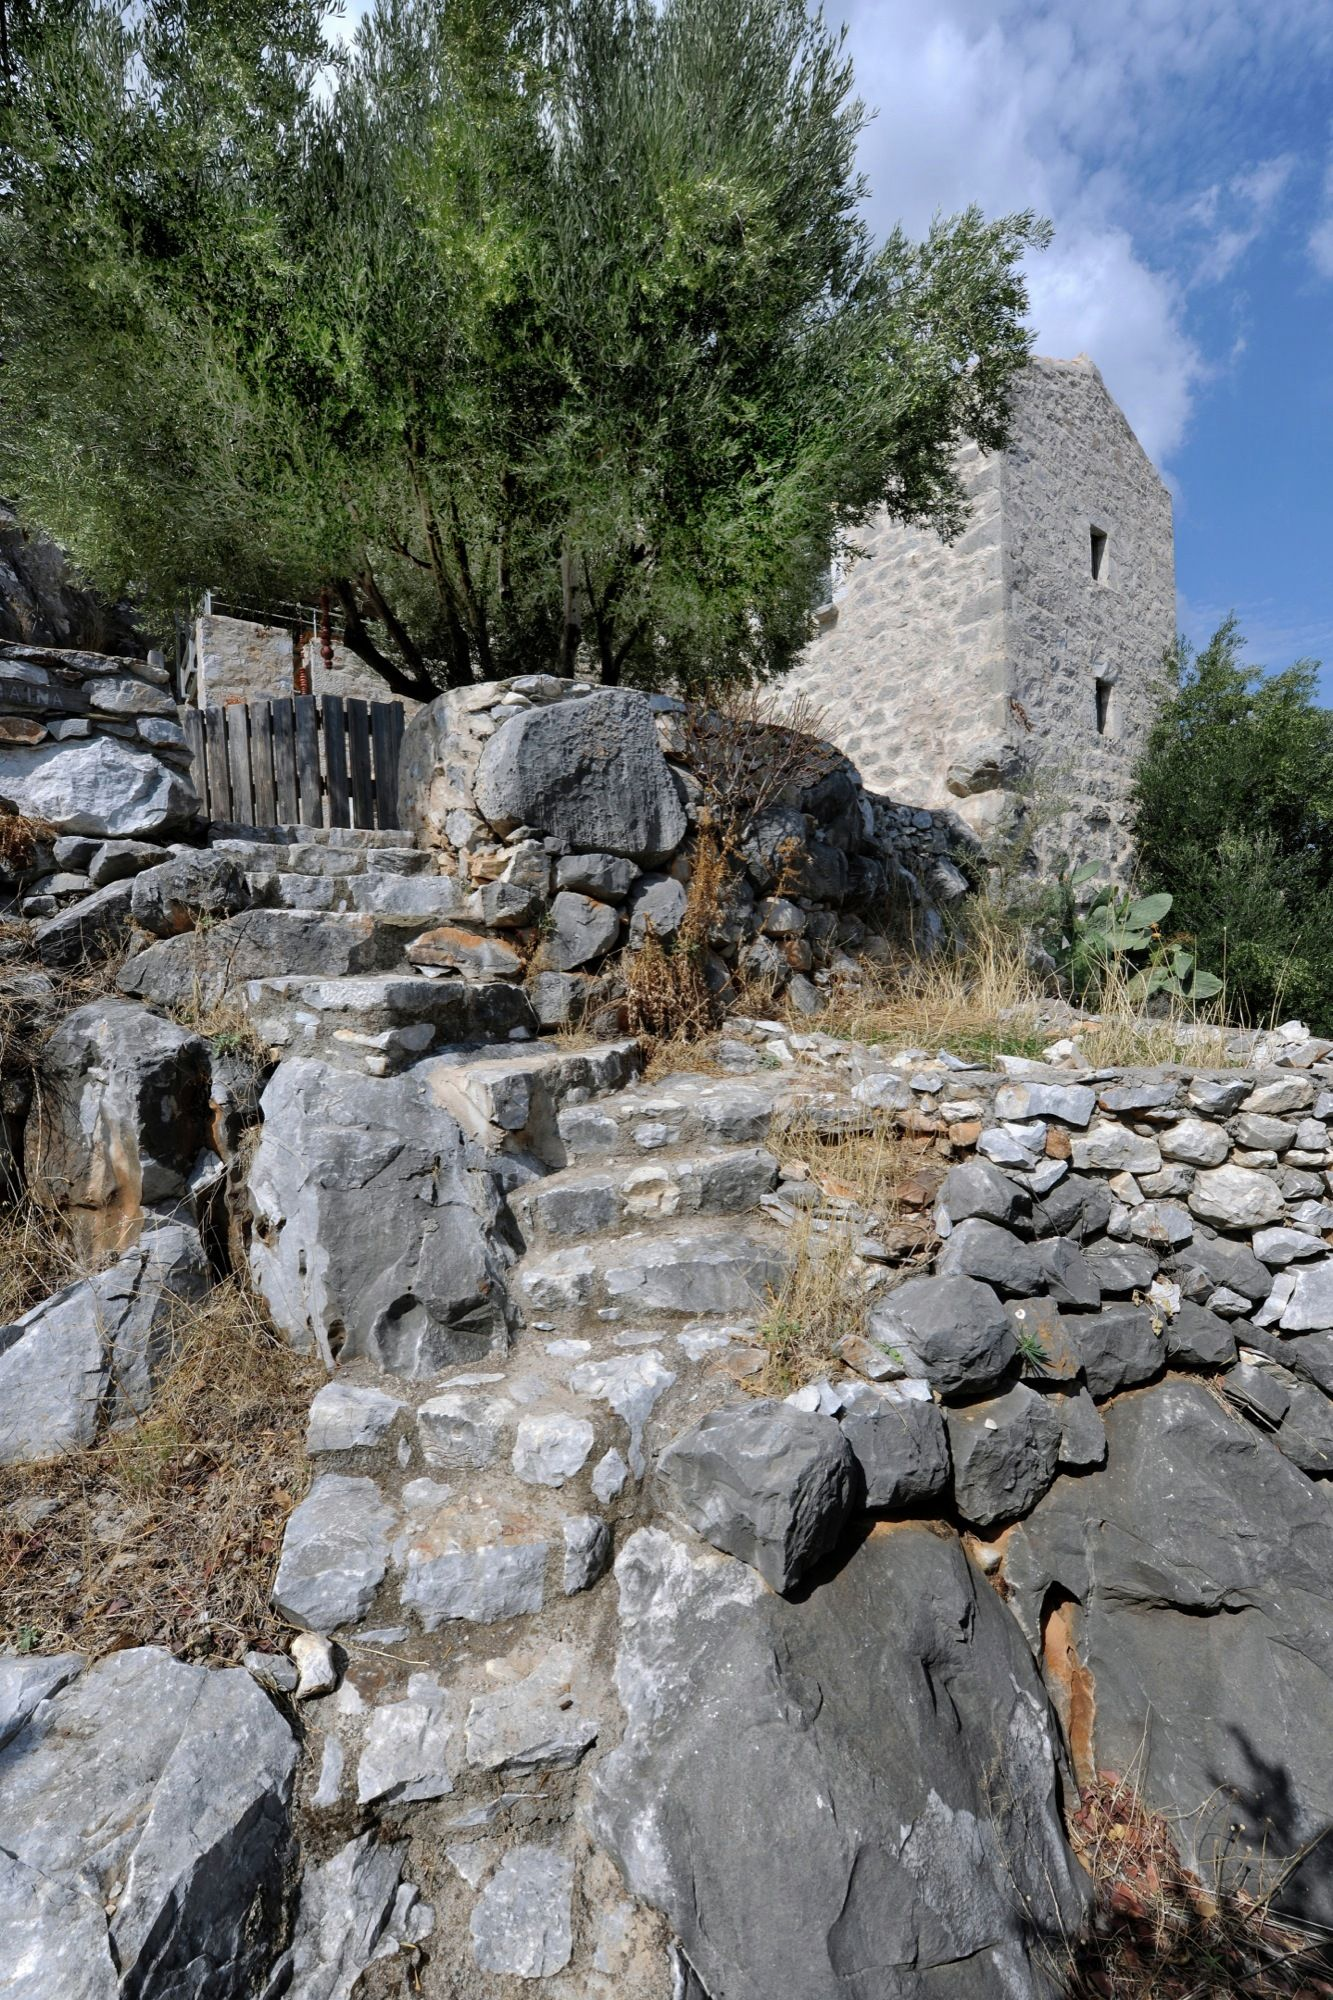 Tower holiday house in Greece waterfall rocks